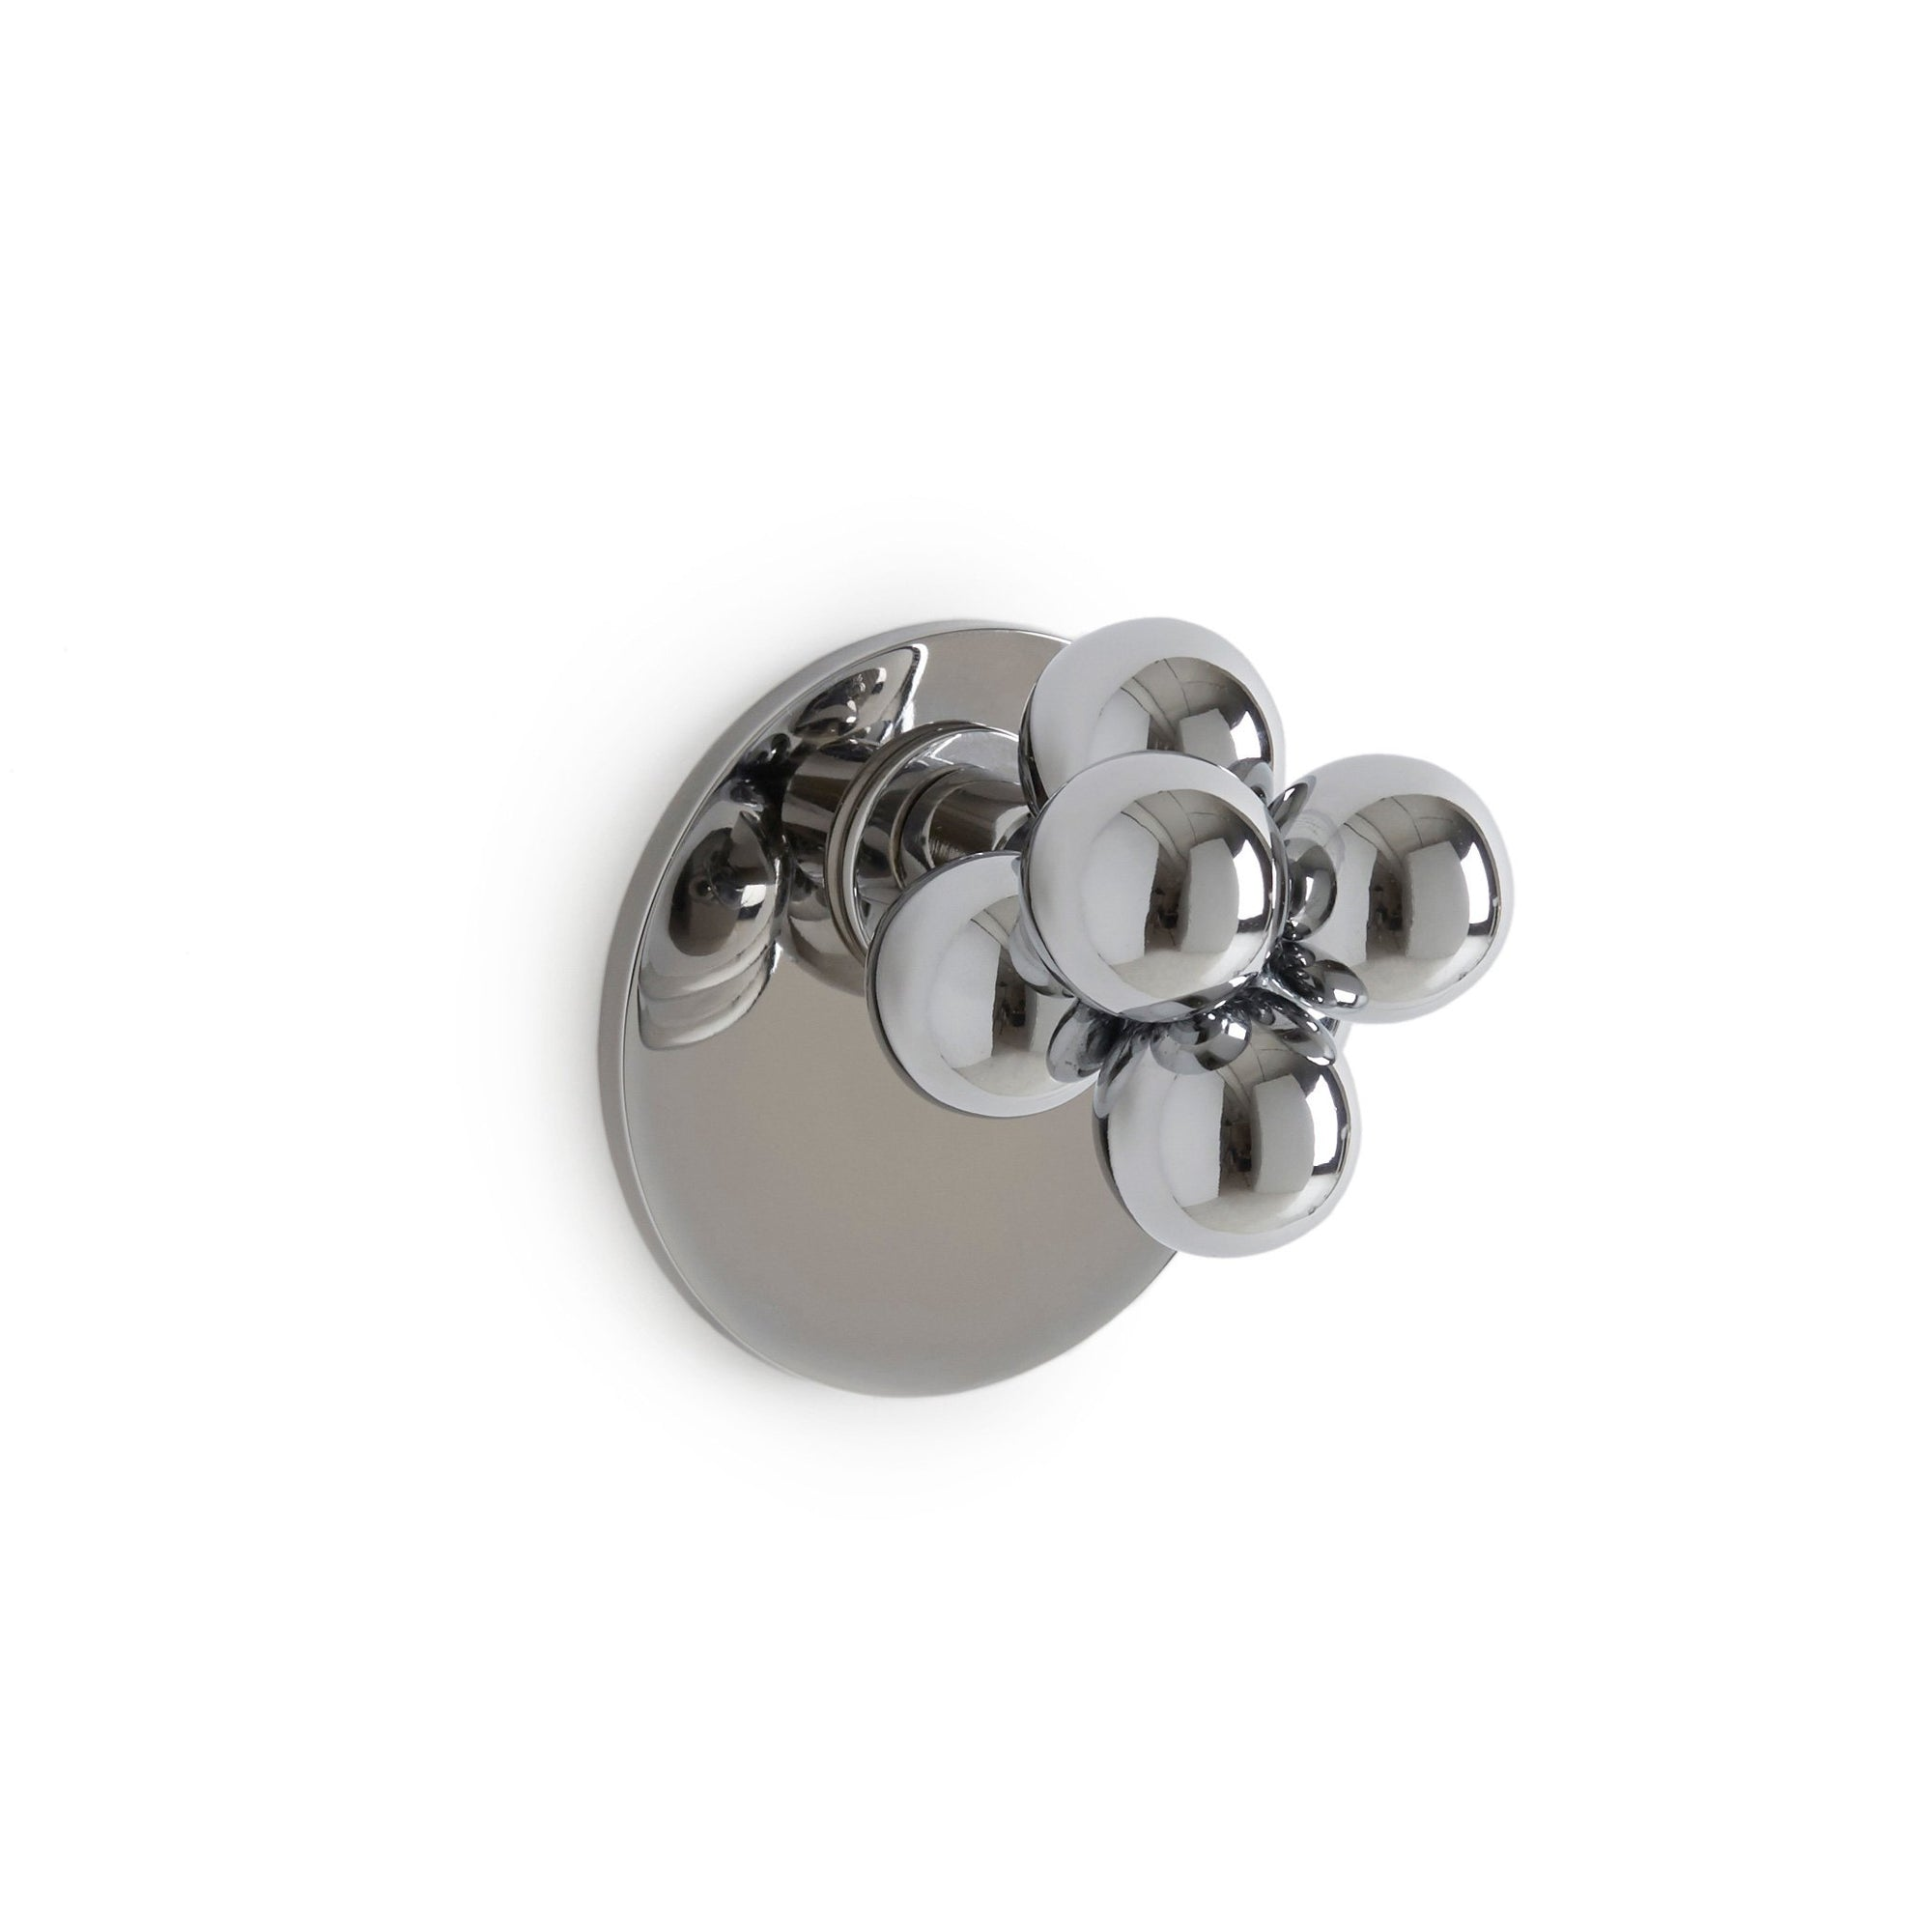 2005DOR-CP Sherle Wagner International Molecule Door Knob in Polished Chrome metal finish